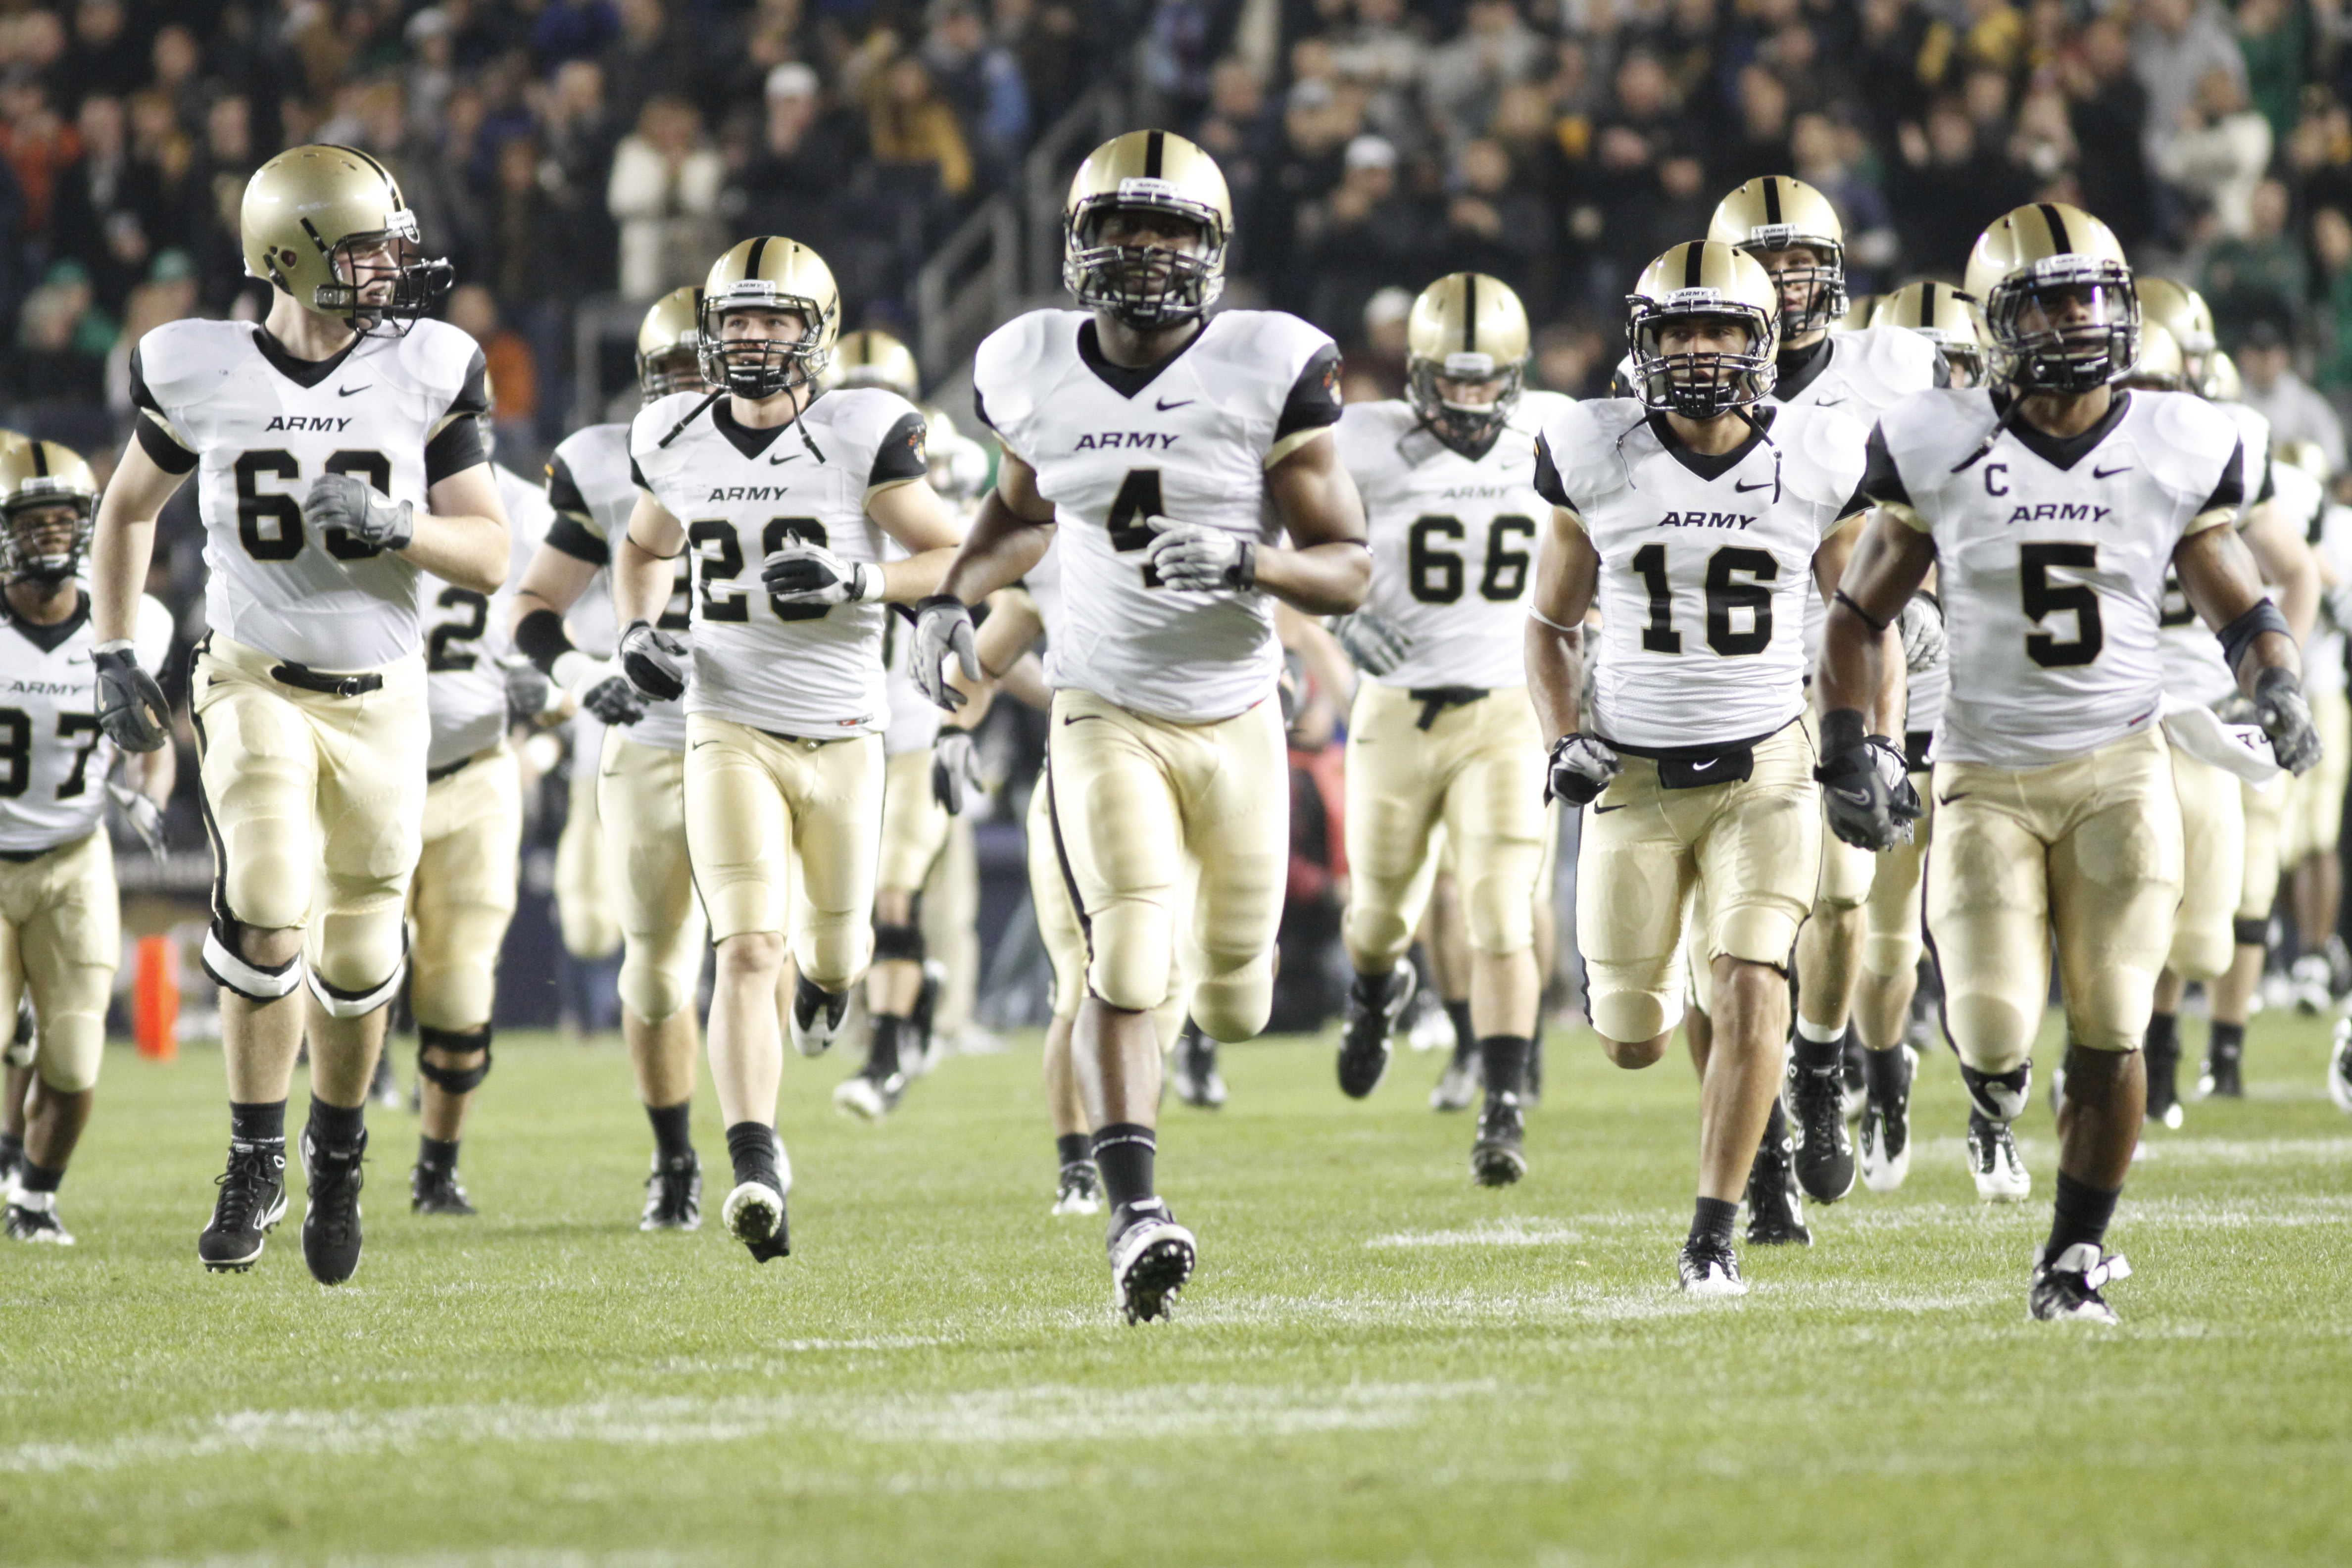 The Black Knights storm onto the field at the start of the Army-Notre Dame game Nov. 20 at Yankee Stadium. The game's attendance was 54,251. Photo by Mike Strasser, West Point Public Affairs